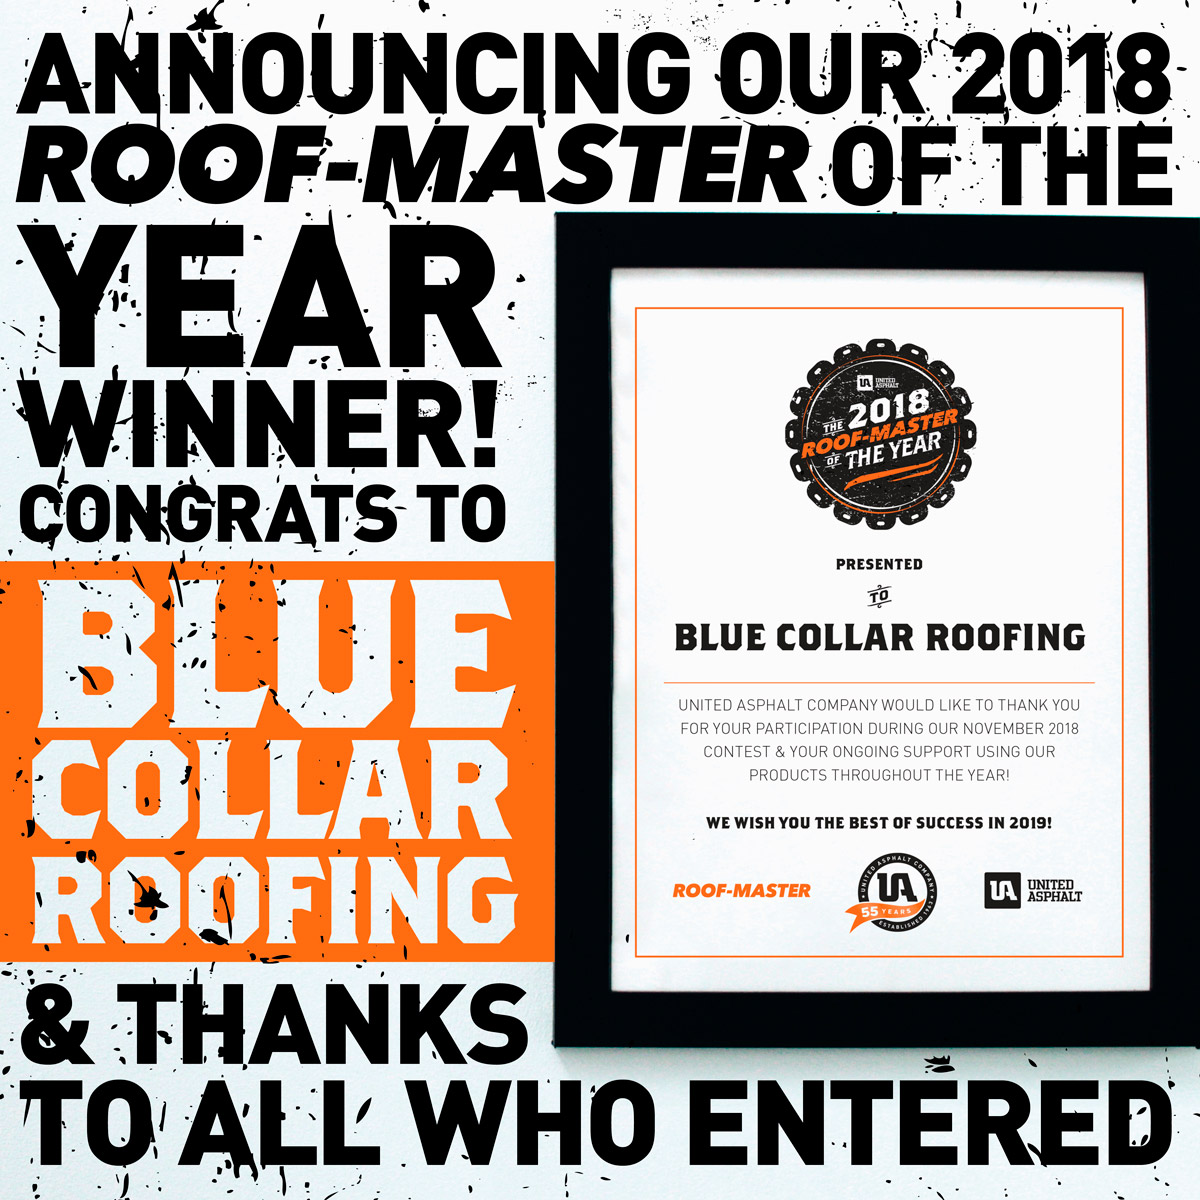 Announcing Our 2018 Roof-Master of the Year Winner! Congrats to Blue Collar Roofing & Thanks to All Who Entered!